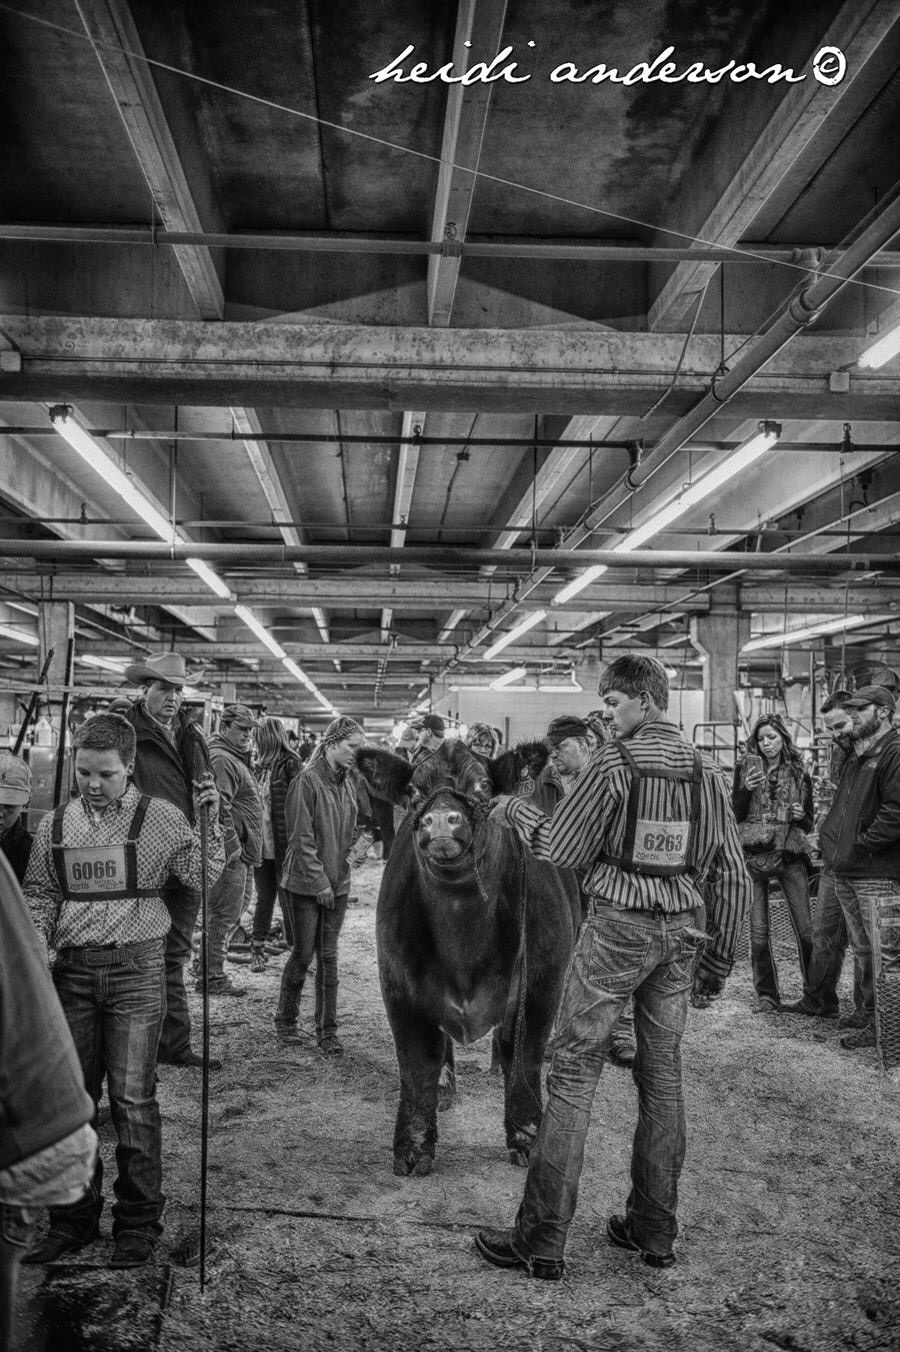 Stock options livestock marketing